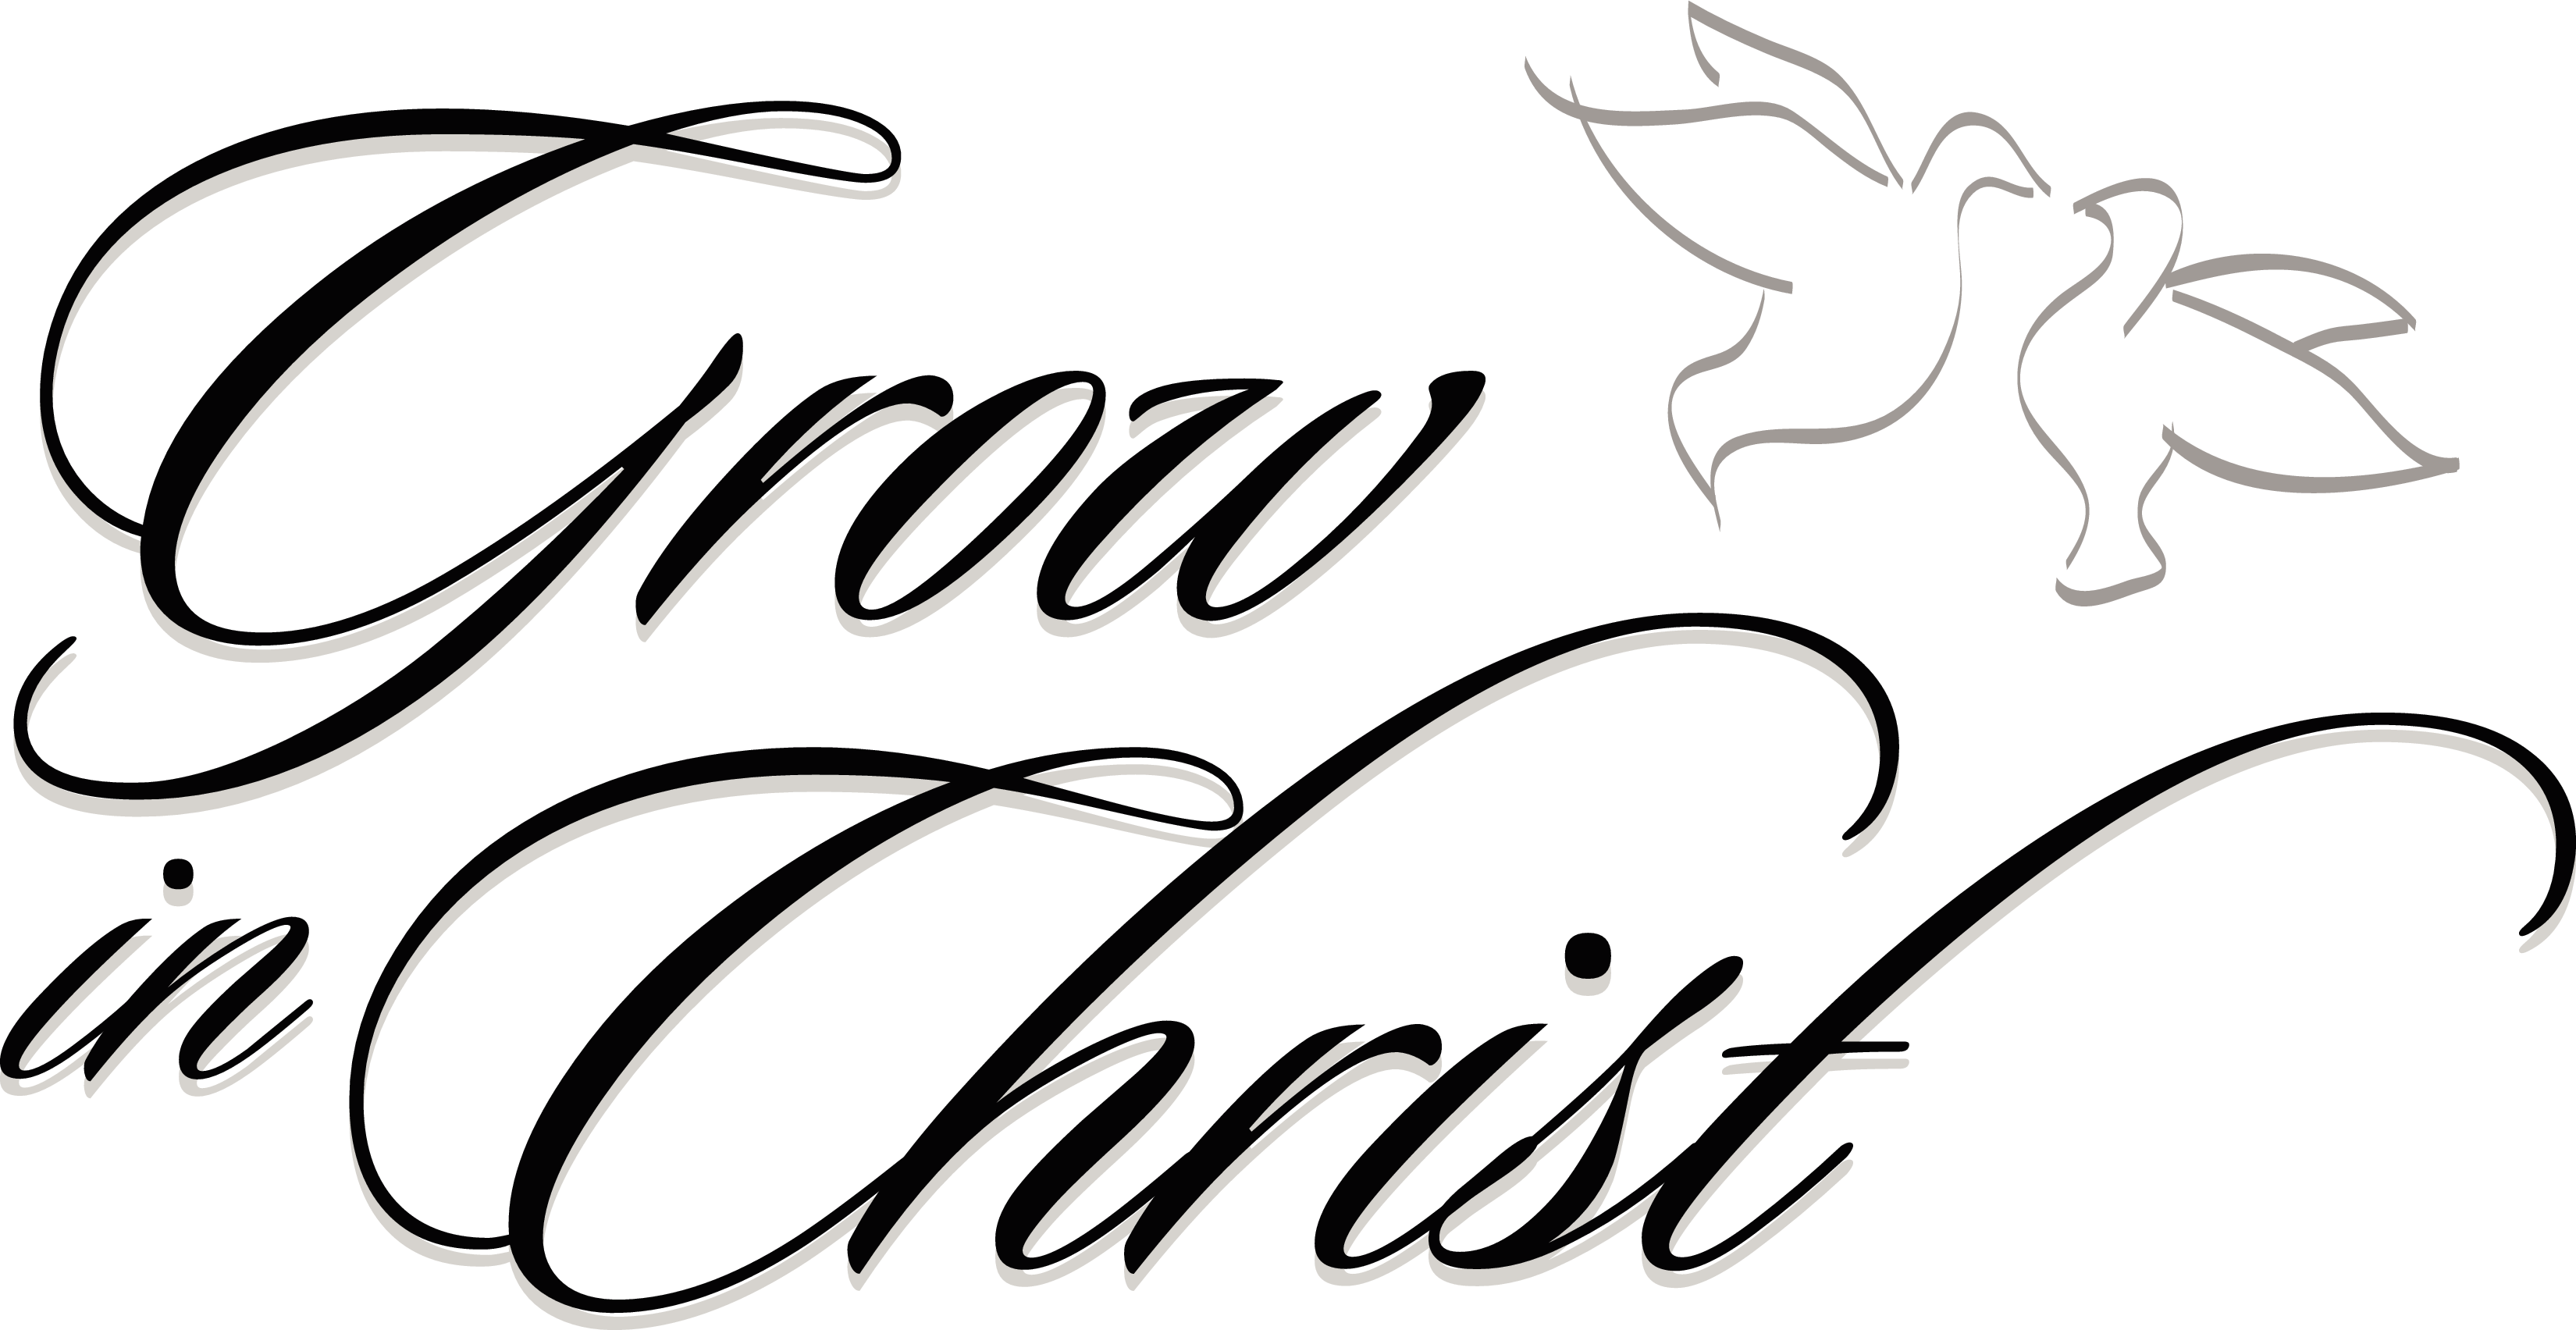 Religious clipart simple 7 clipart 2 Cliparting image